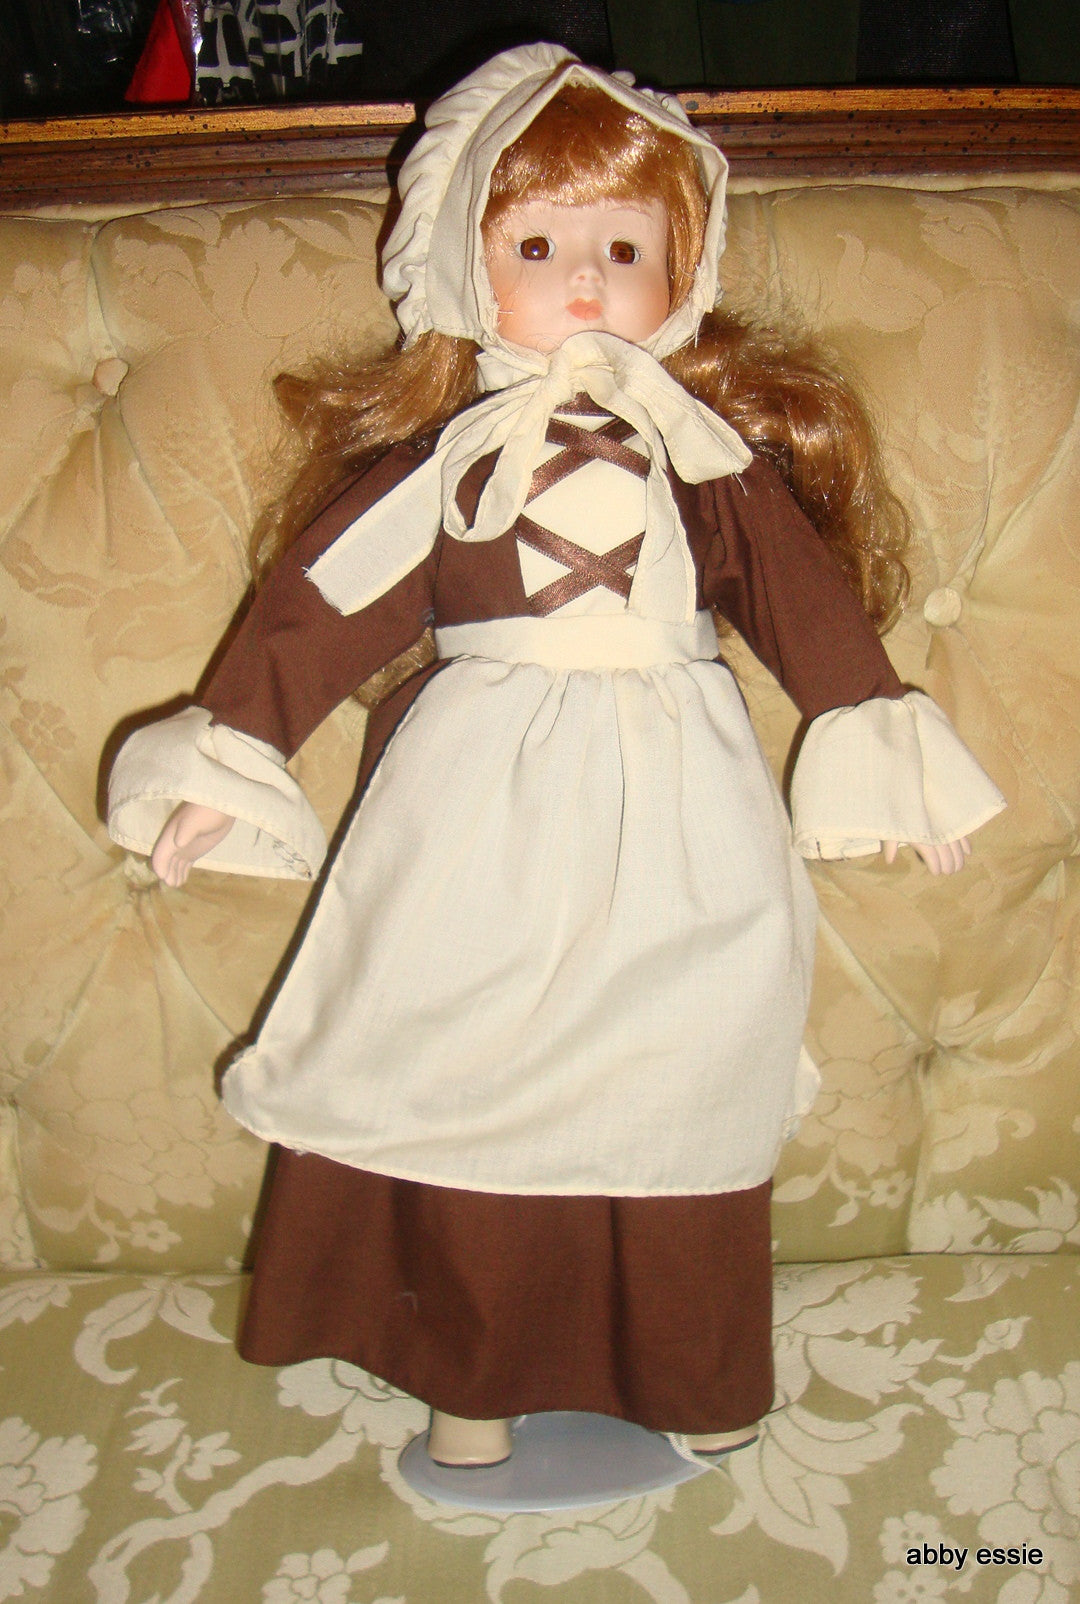 VINTAGE PORCELAIN VICTORIAN ENGLISH 19TH 18TH CENTURY DOLL ON STAND WIT